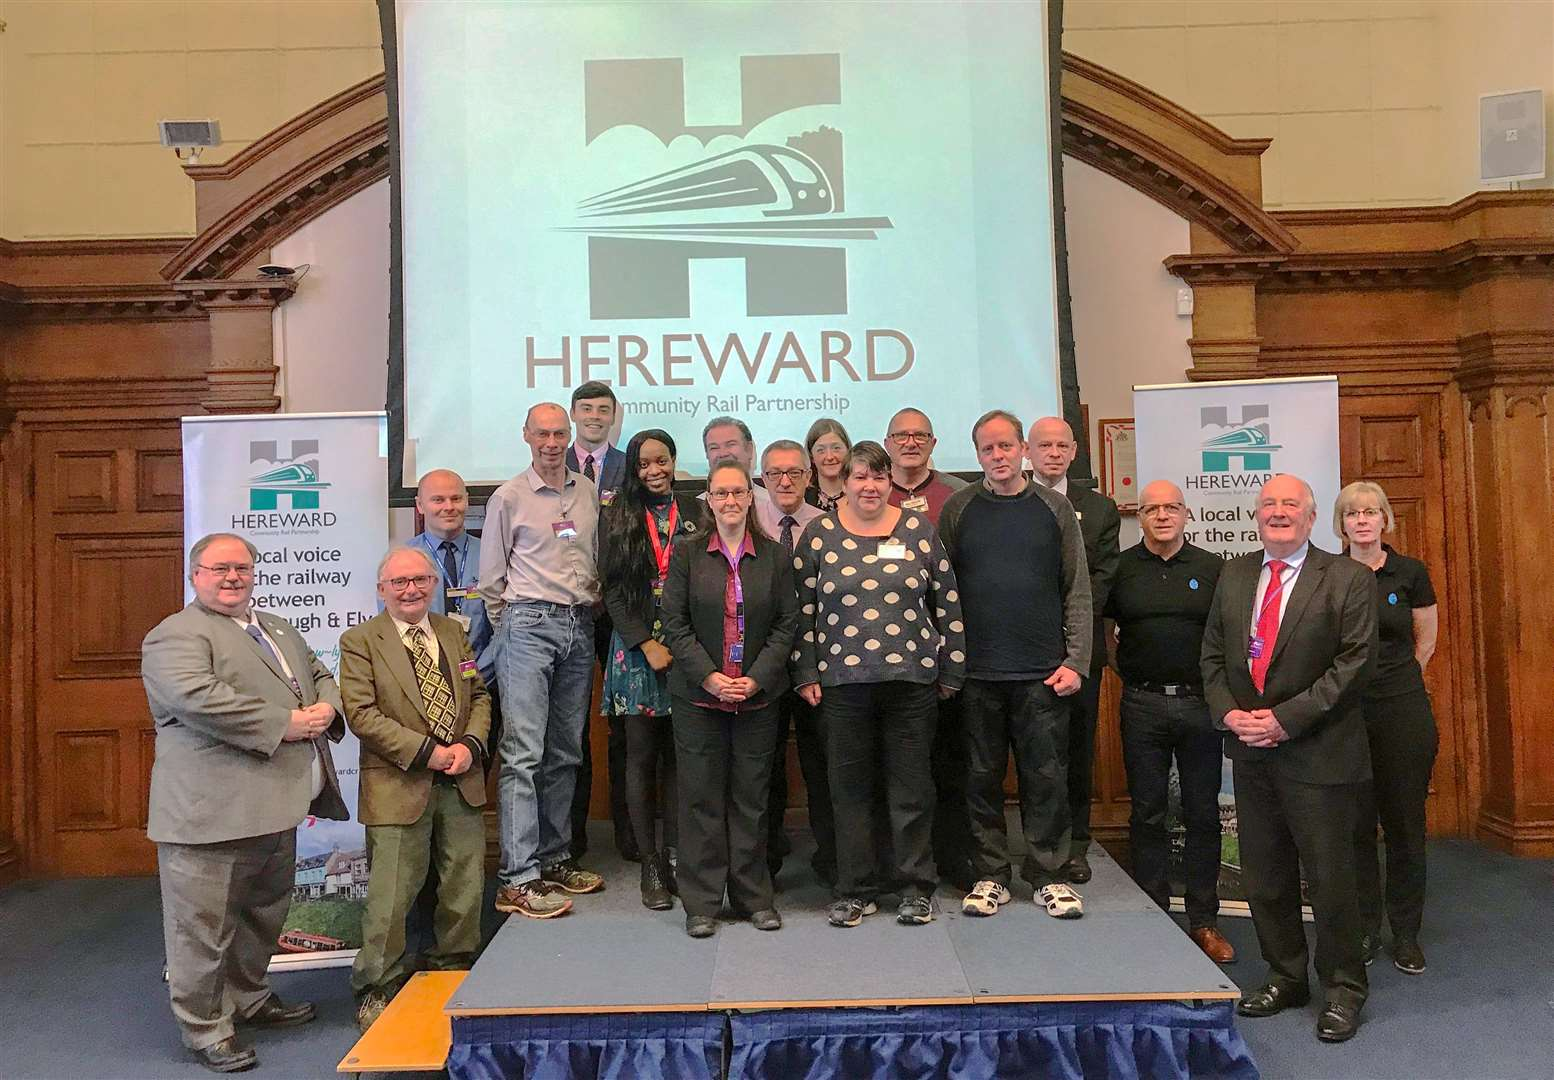 Representatives from Hereward CRP partners Fenland District Council, and train operators CrossCountry, East Midlands Trains and Greater Anglia join with other steering group members, volunteers and local organisations to unveil the new Hereward CRP logo. (7218842)